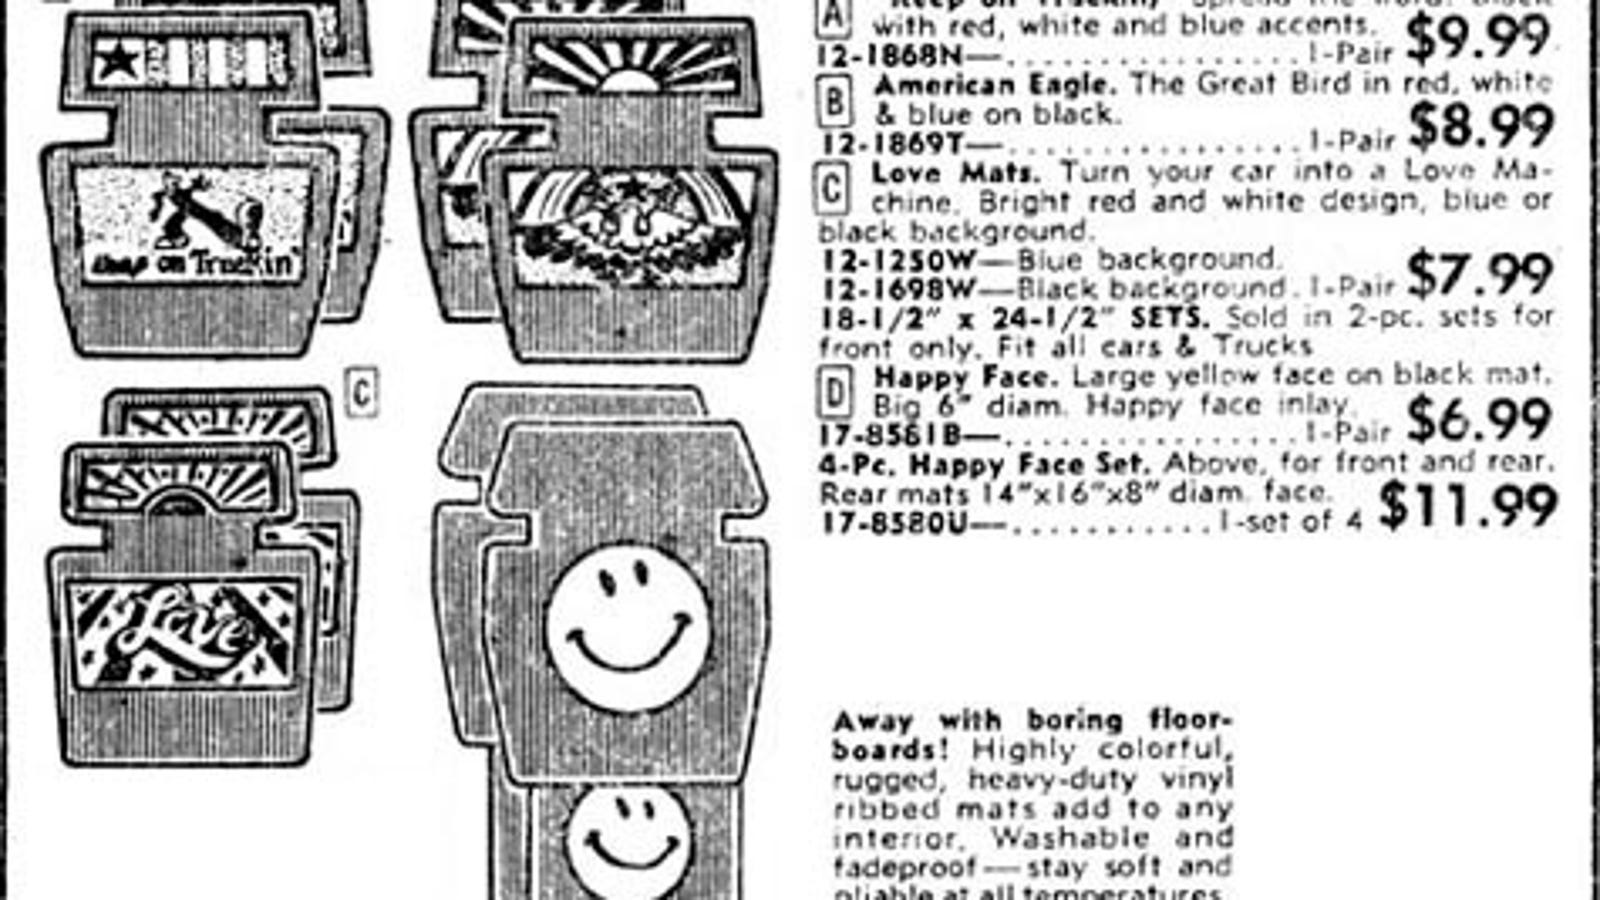 JC Whitney 1975: Turn Your Car Into a Love Machine